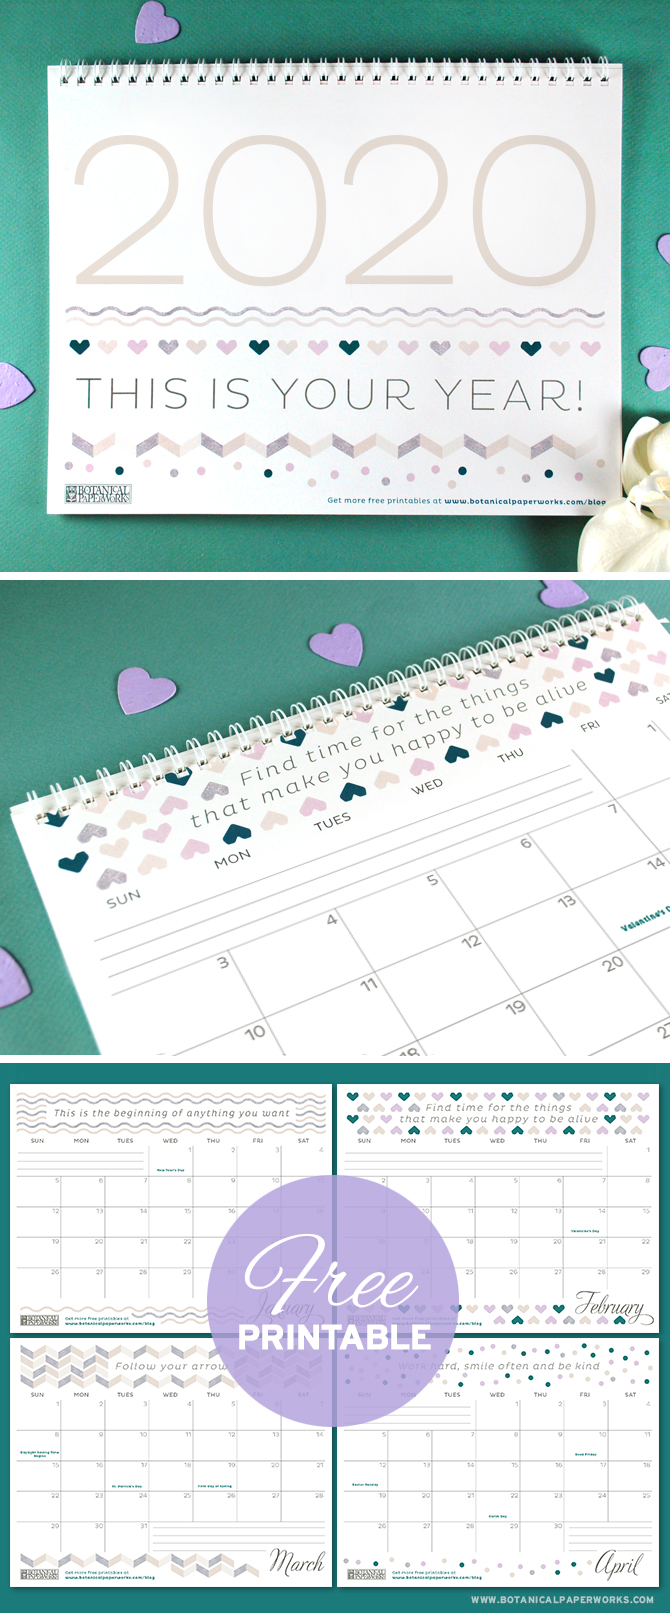 Keep track of life's special moments and feel inspired by the motivational quotes with this free printable calendar. See more designs and download your favorite 2020 calendar on our blog!